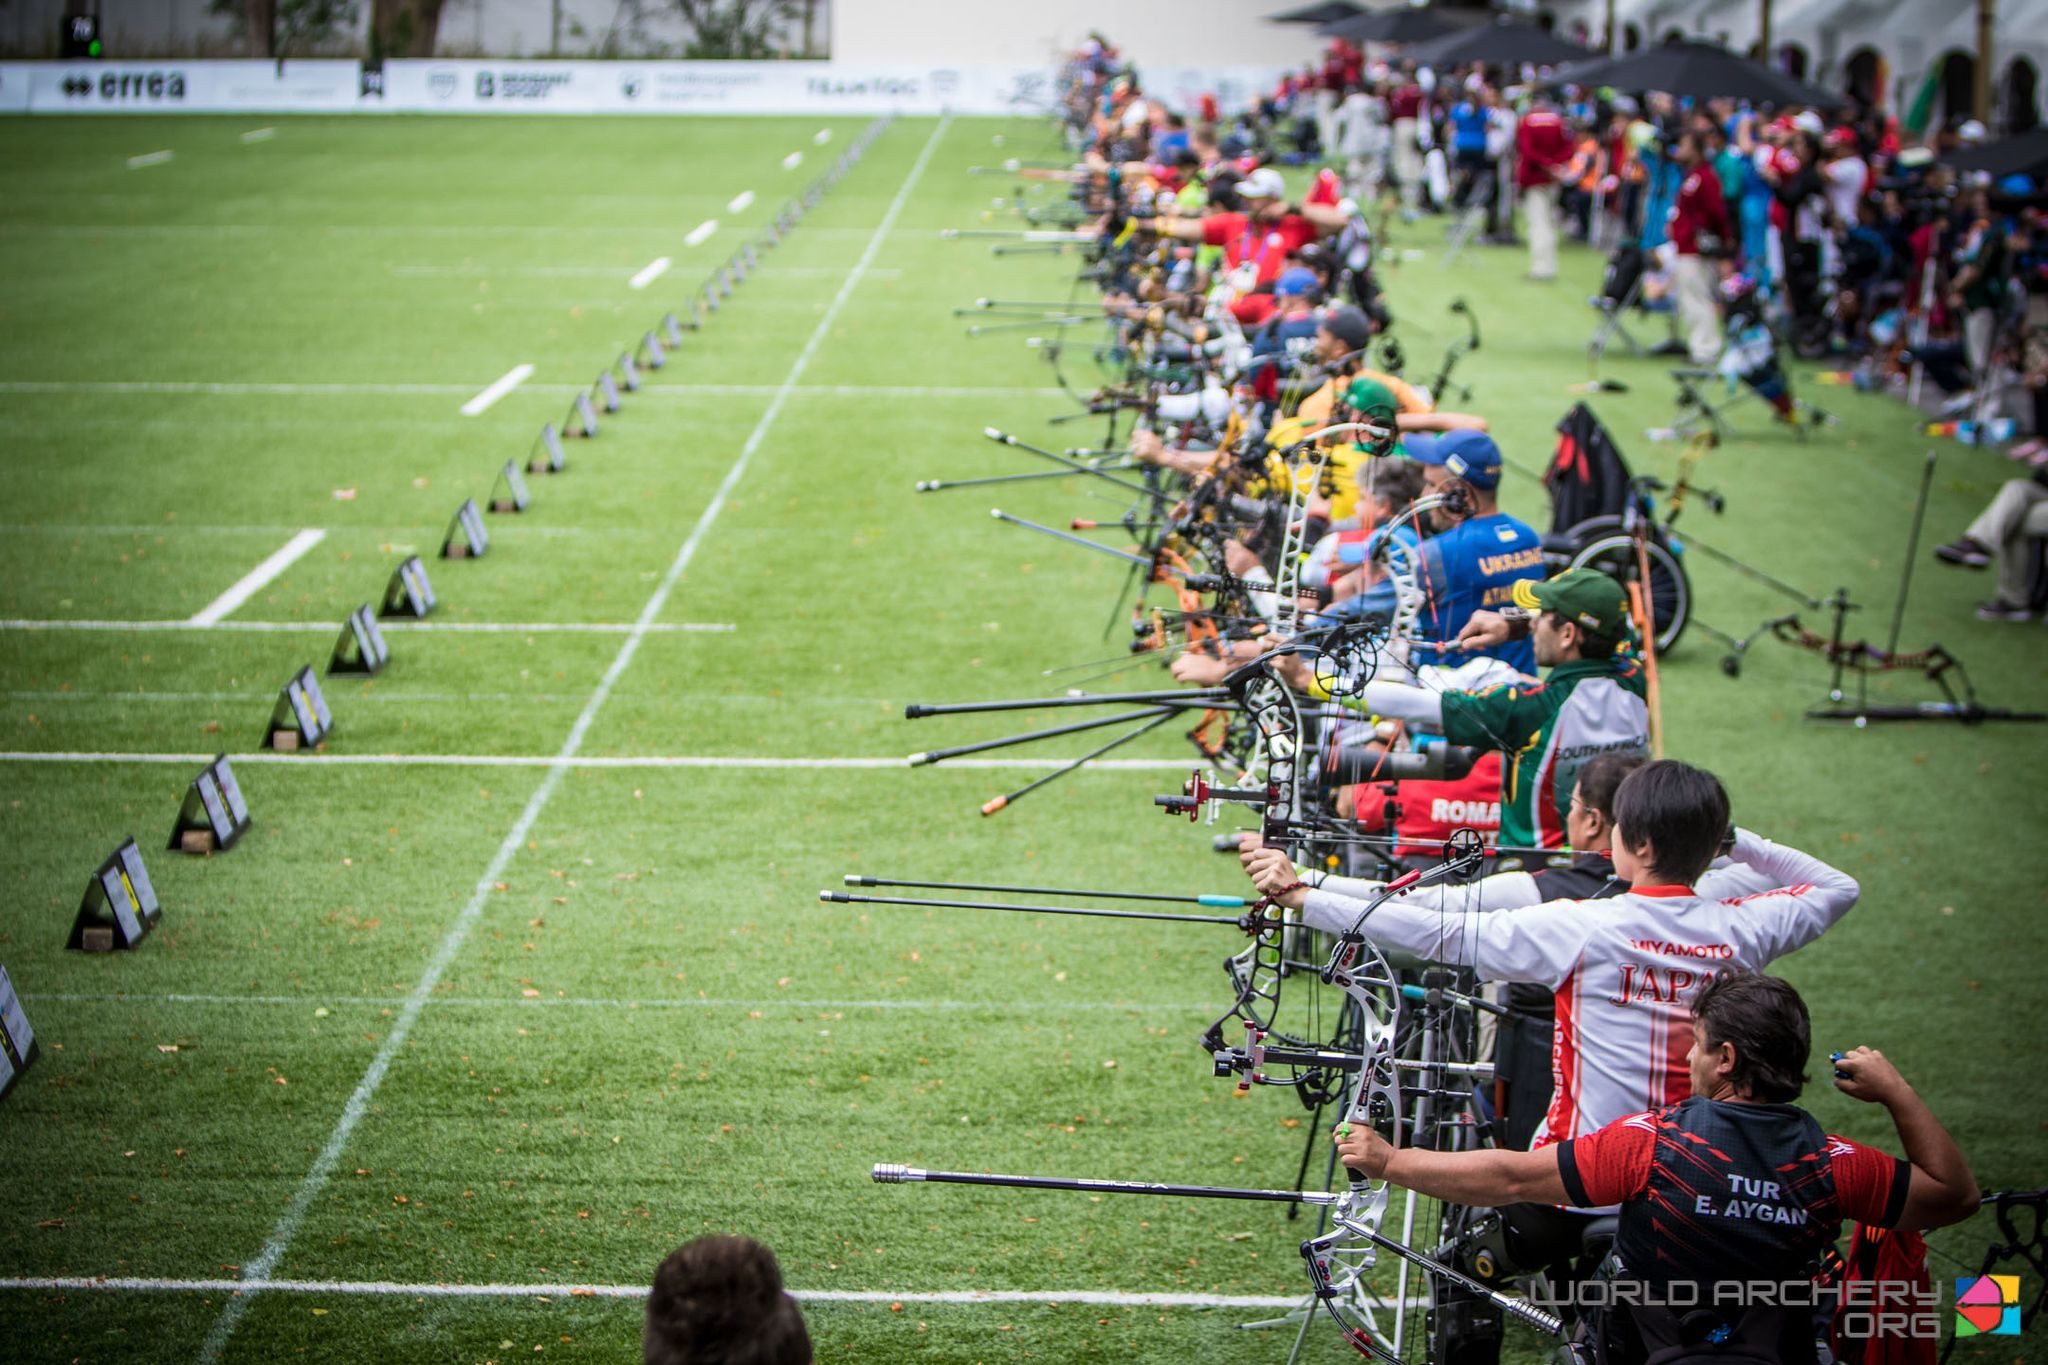 World records for Ukraine and China in team matchplay at World Archery Para Championships in the Netherlands